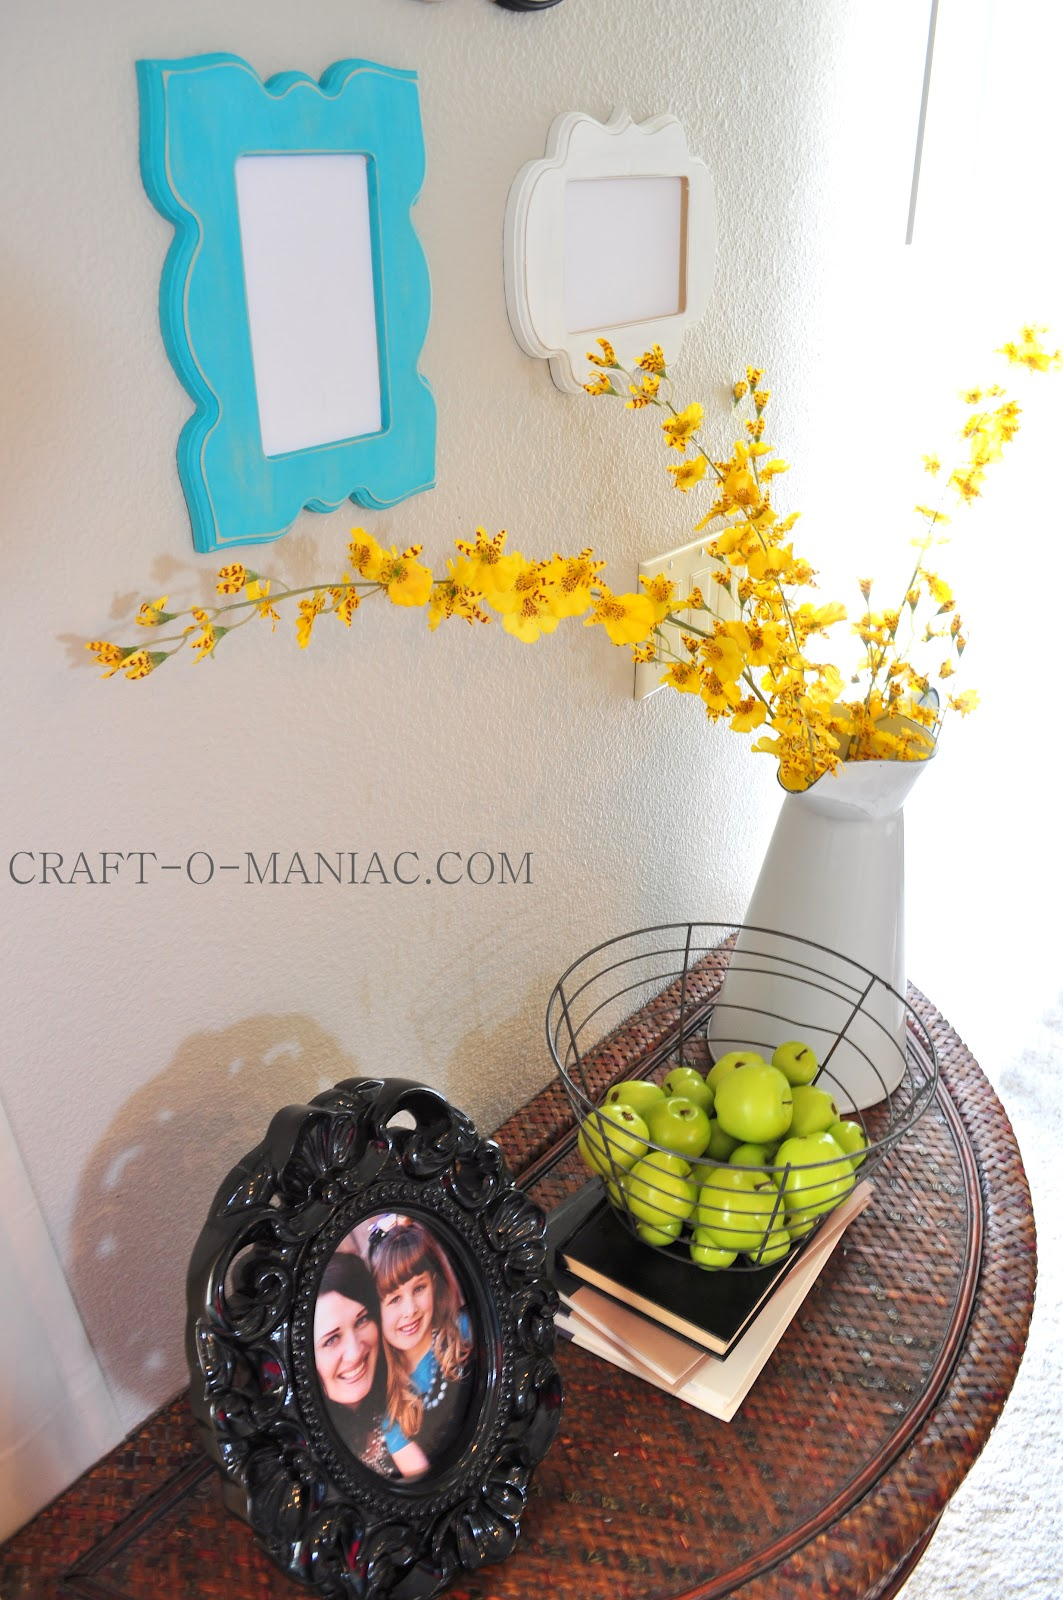 Home Decor Gallery Wall with Table Craft O Maniac